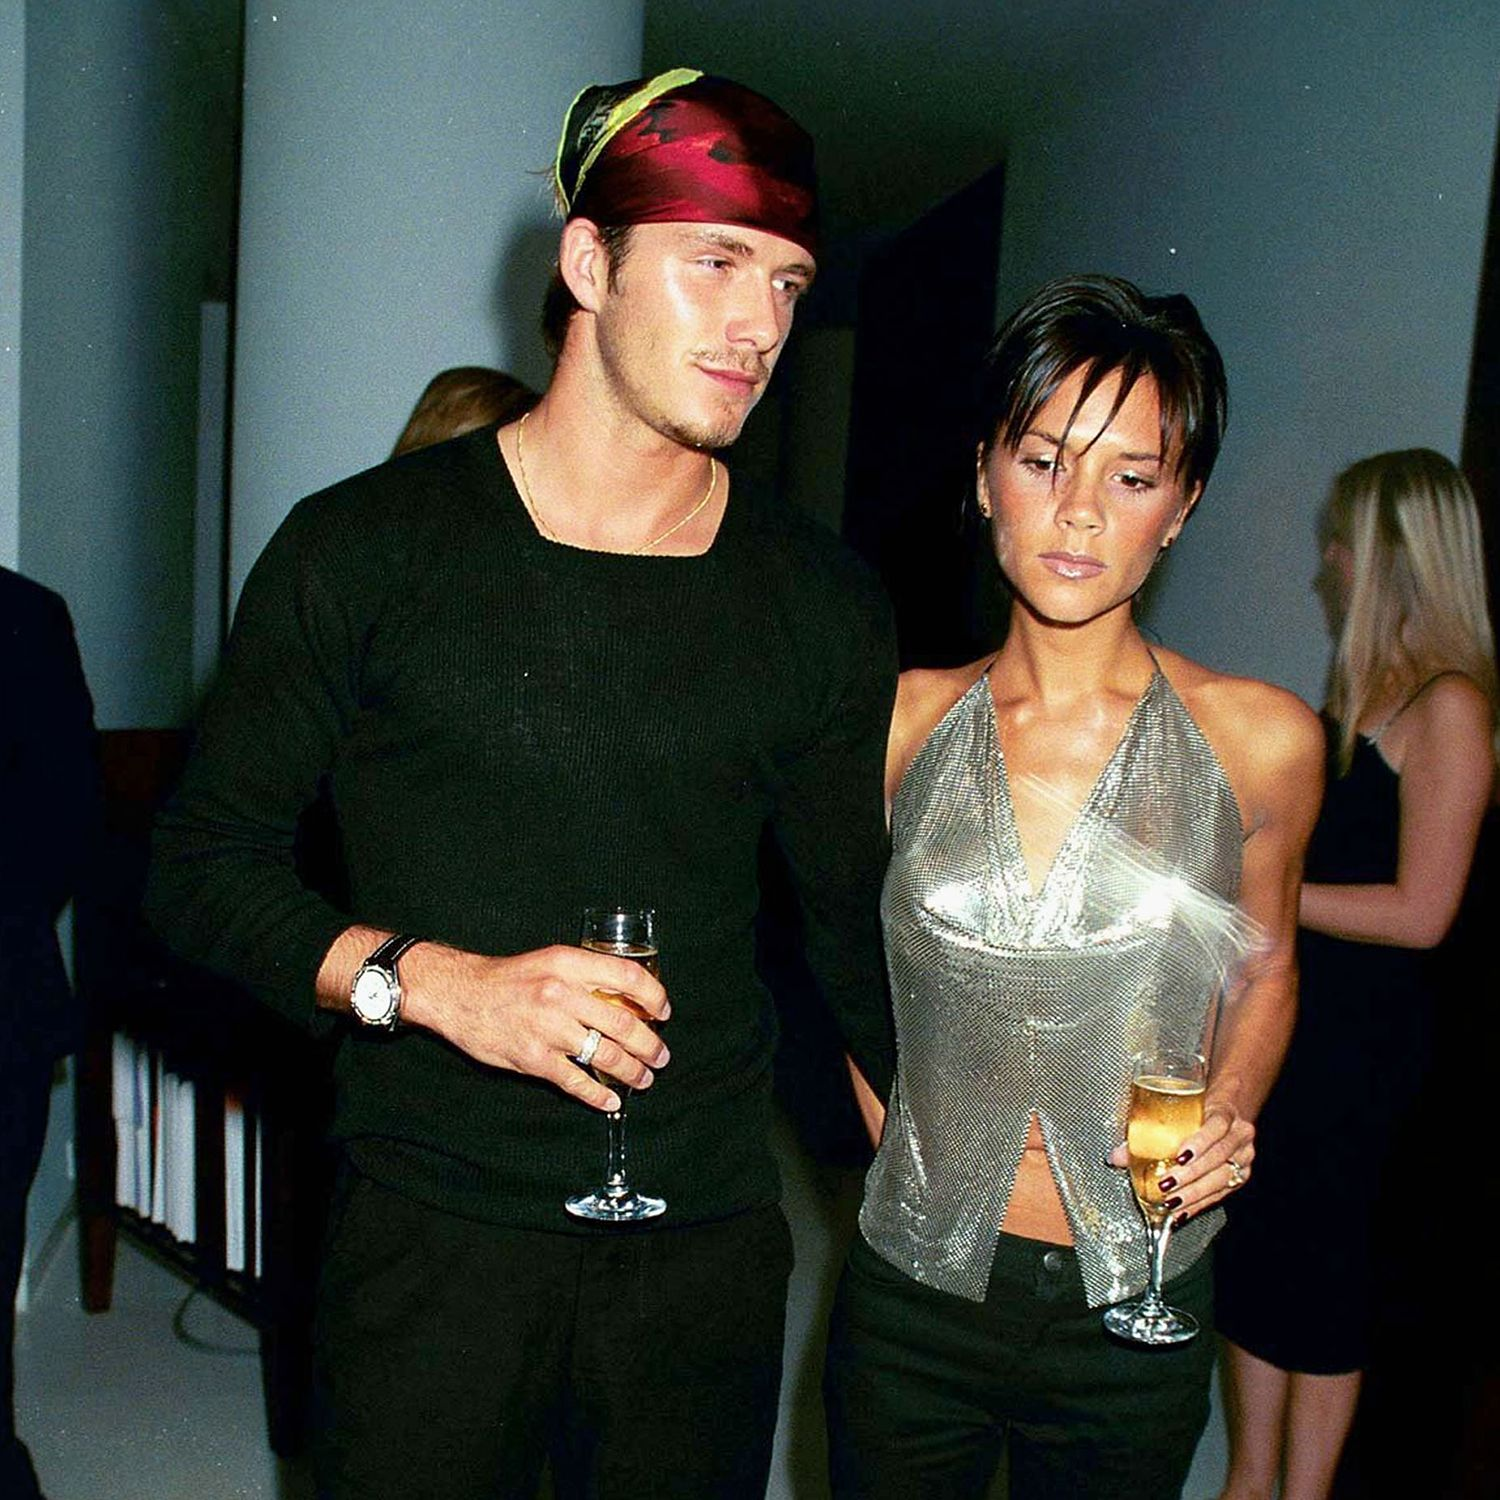 LONDON - September 20:  Footballer David Beckham and Singer Victoria Beckham attend the launch of Jade Jagger's jewelery range on September 20, 1999 in Lodnon.  (Photo by Dave Benett/Getty Images) *** Local Caption *** David Beckham&#x3B;Victoria Beckham